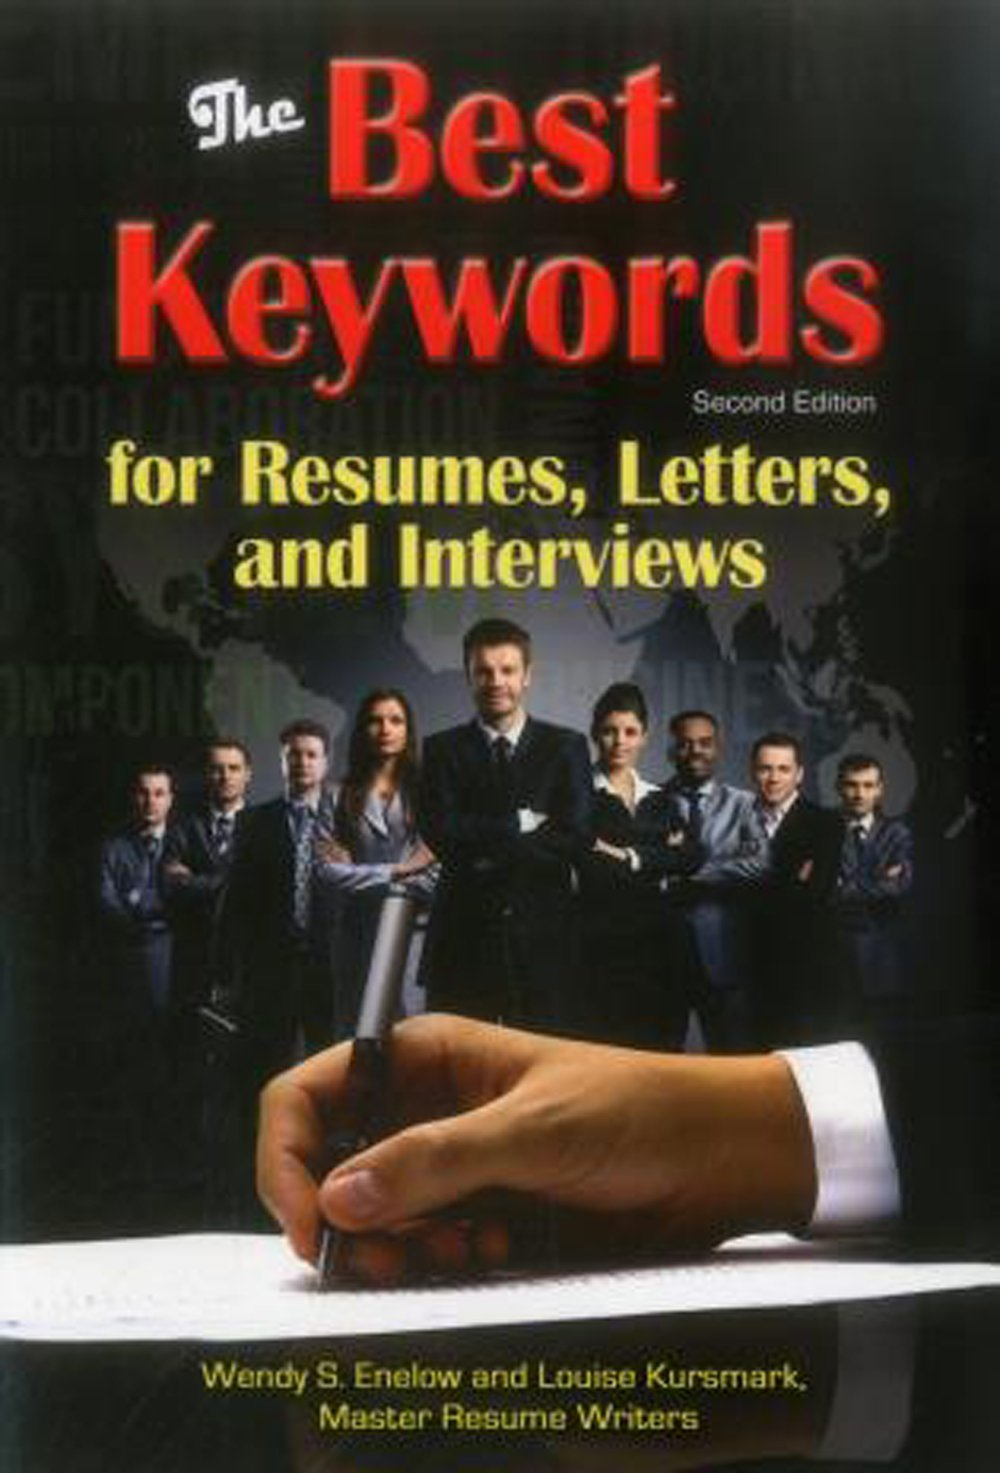 Image for The Best Keywords for Resumes, Letters, and Interviews: Powerful Words and Phrases for Landing Great Jobs!